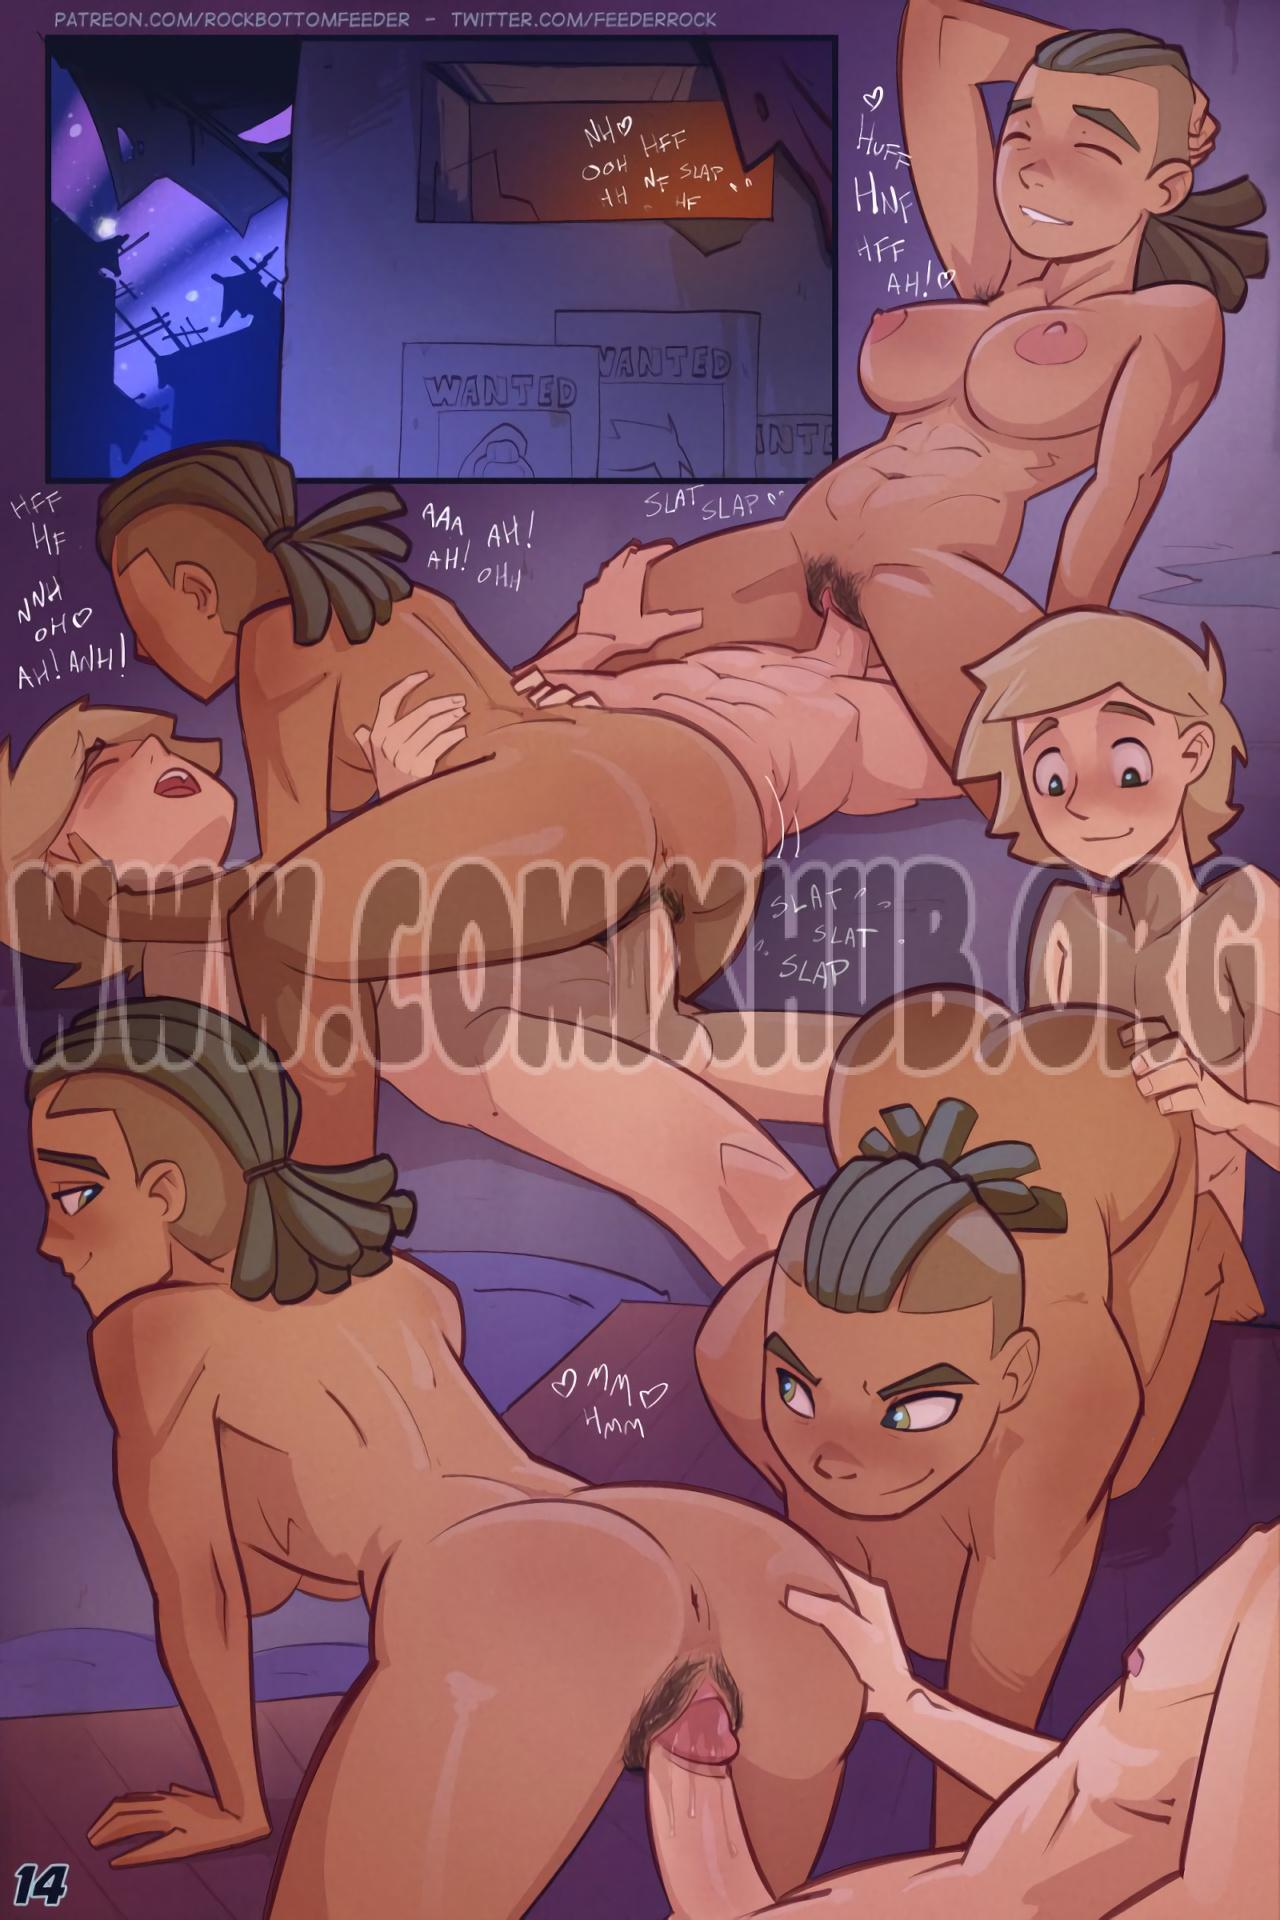 Deserter Oral sex, Aliens, Anal Sex, cunnilingus, Double Penetration, Fantasy, Furry, Gangbang, Group Sex, Straight, X-Ray